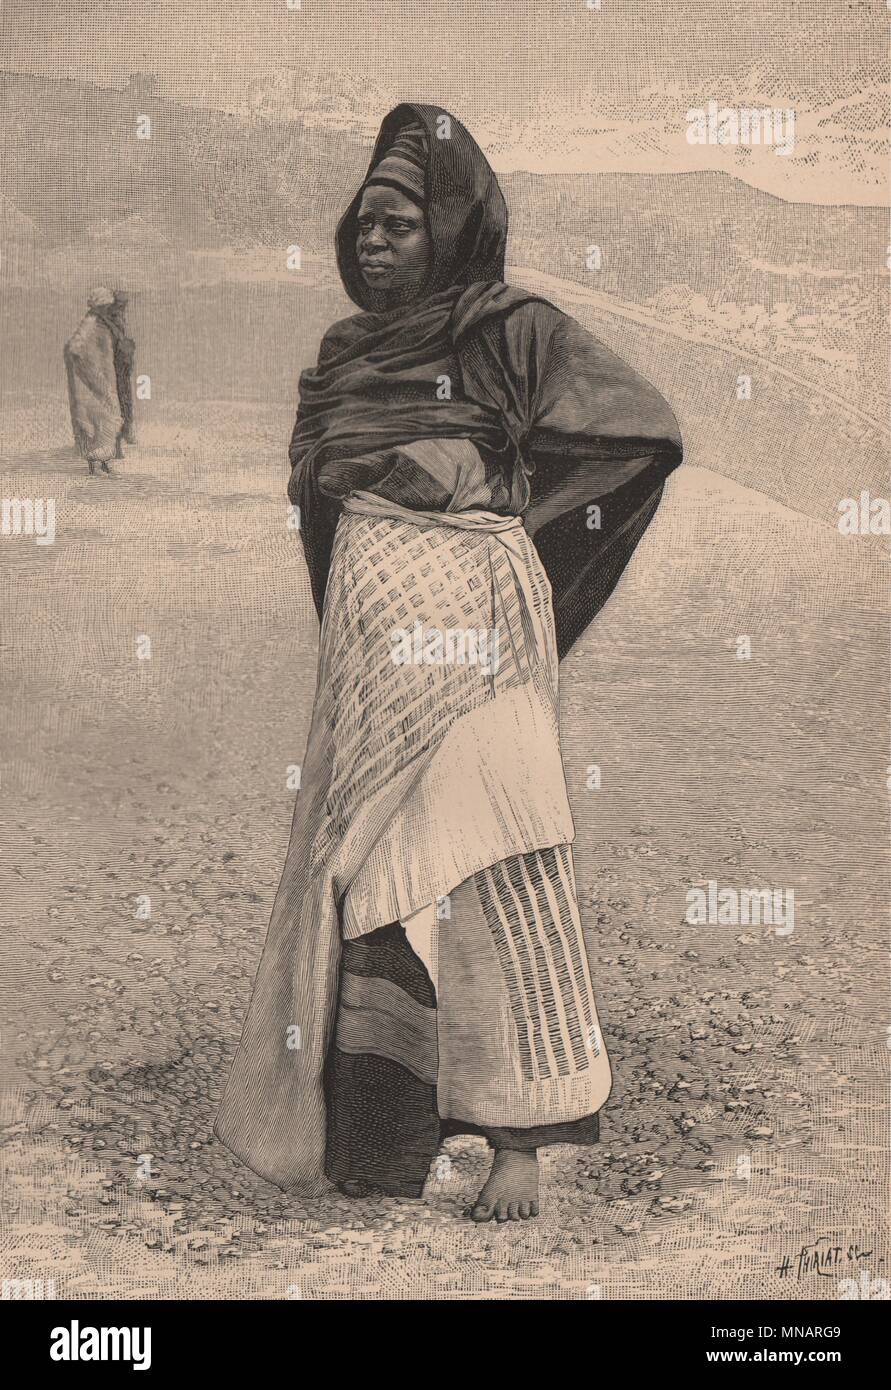 Nupe (Tapa) Woman. Nigeria. The Niger Basin 1885 old antique print picture - Stock Image